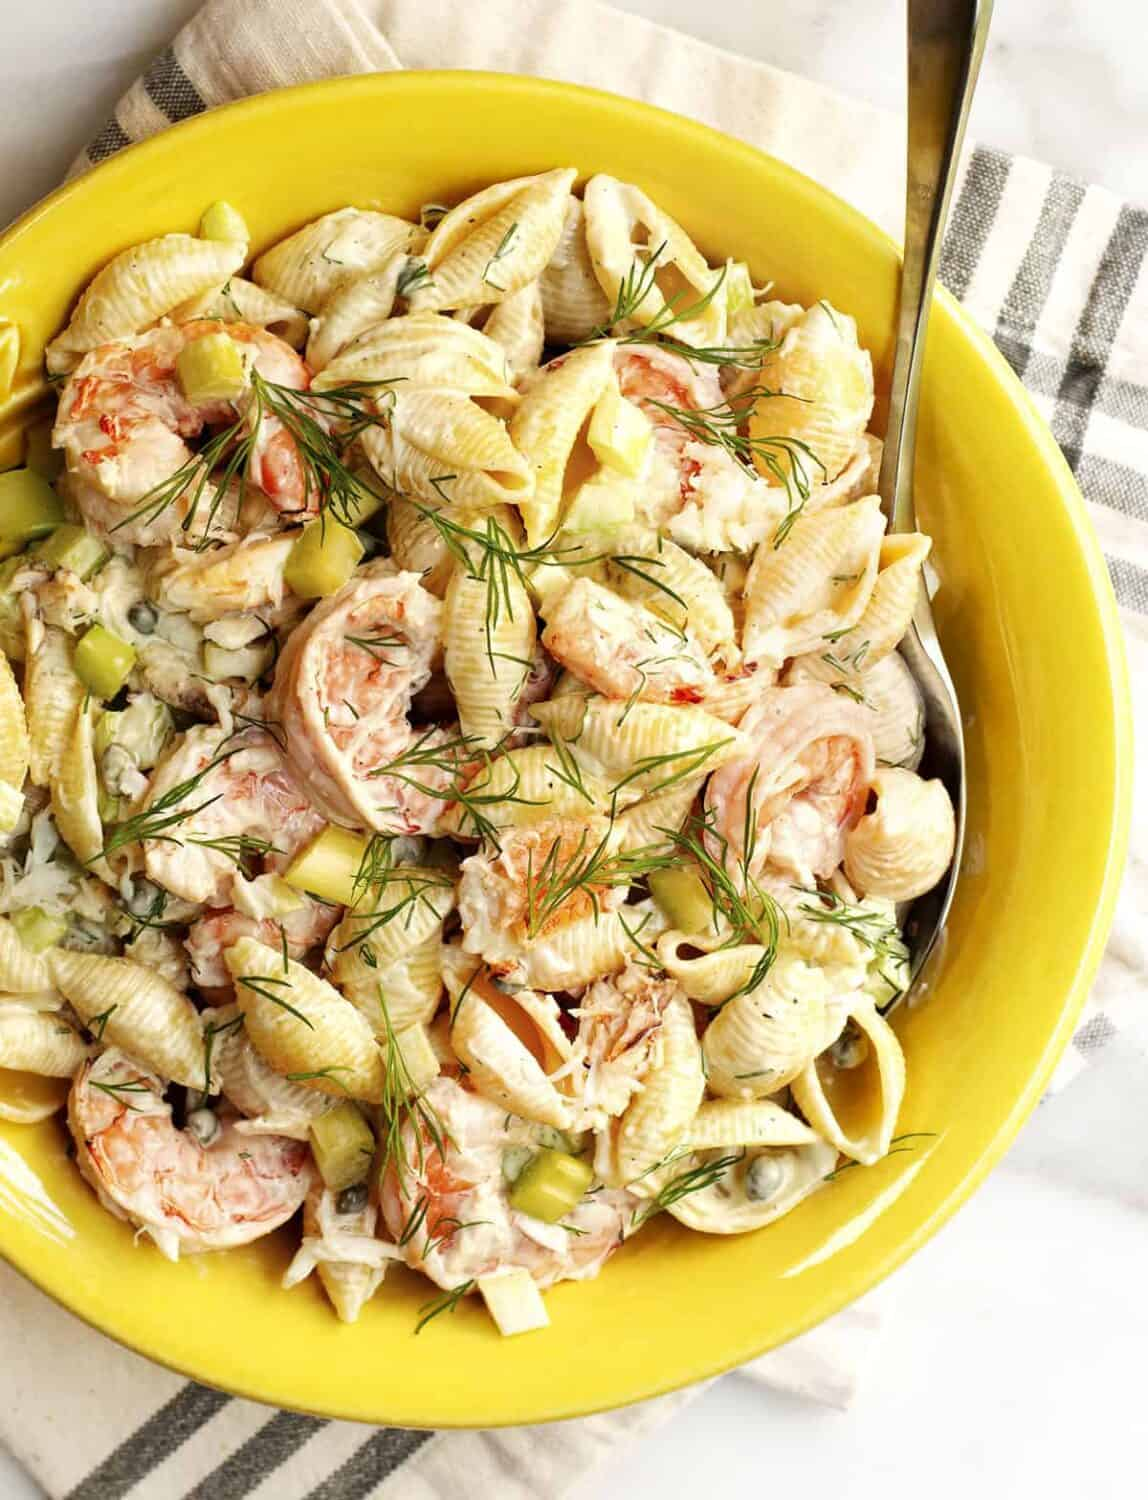 seafood pasta salad served in a yellow ceramic bowl